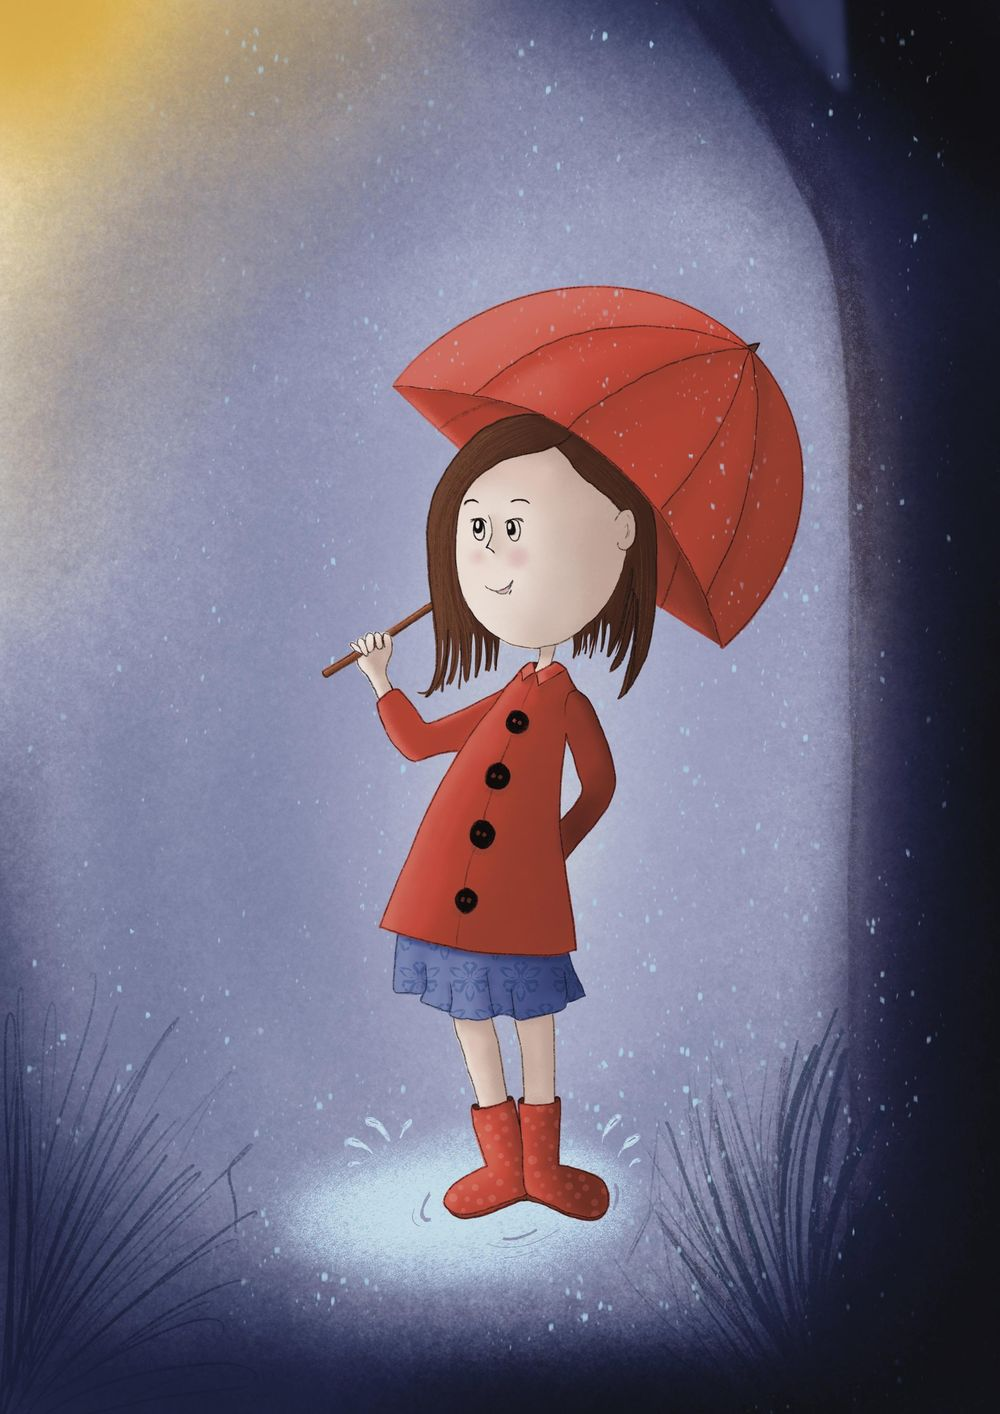 Girl in rain - image 1 - student project